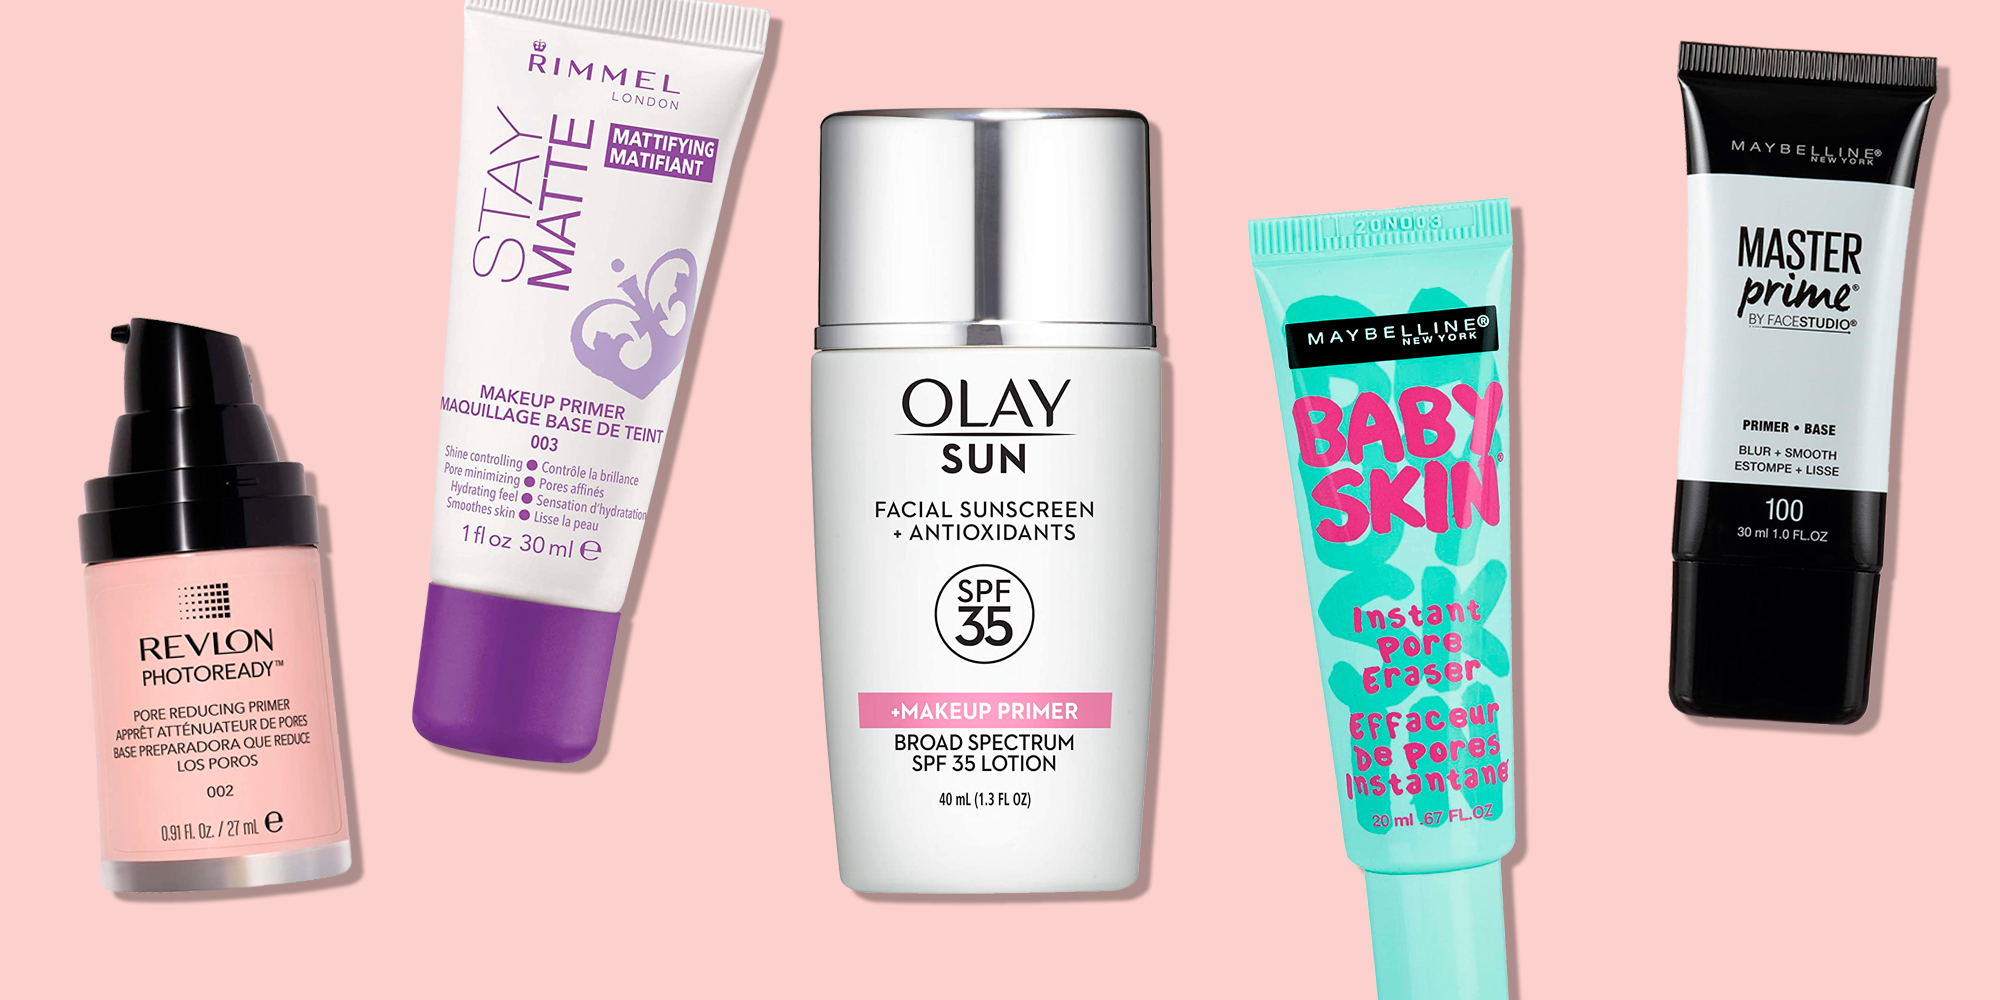 11 Best Drugstore Primers Of 2021 Makeup Primers For Any Skin Type